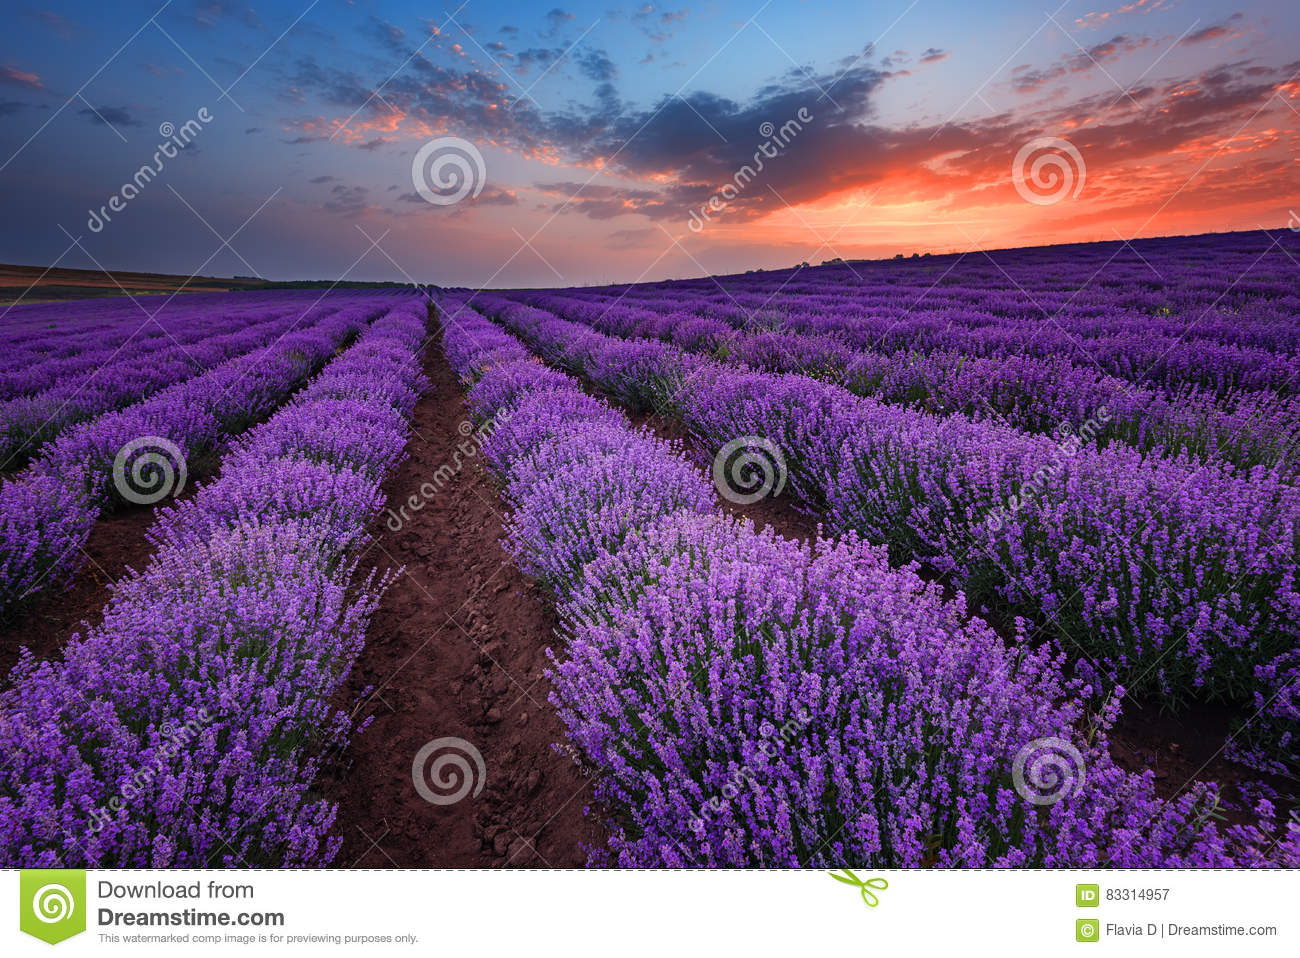 Sunrise at lavender field near the town of Burgas, Bulgaria